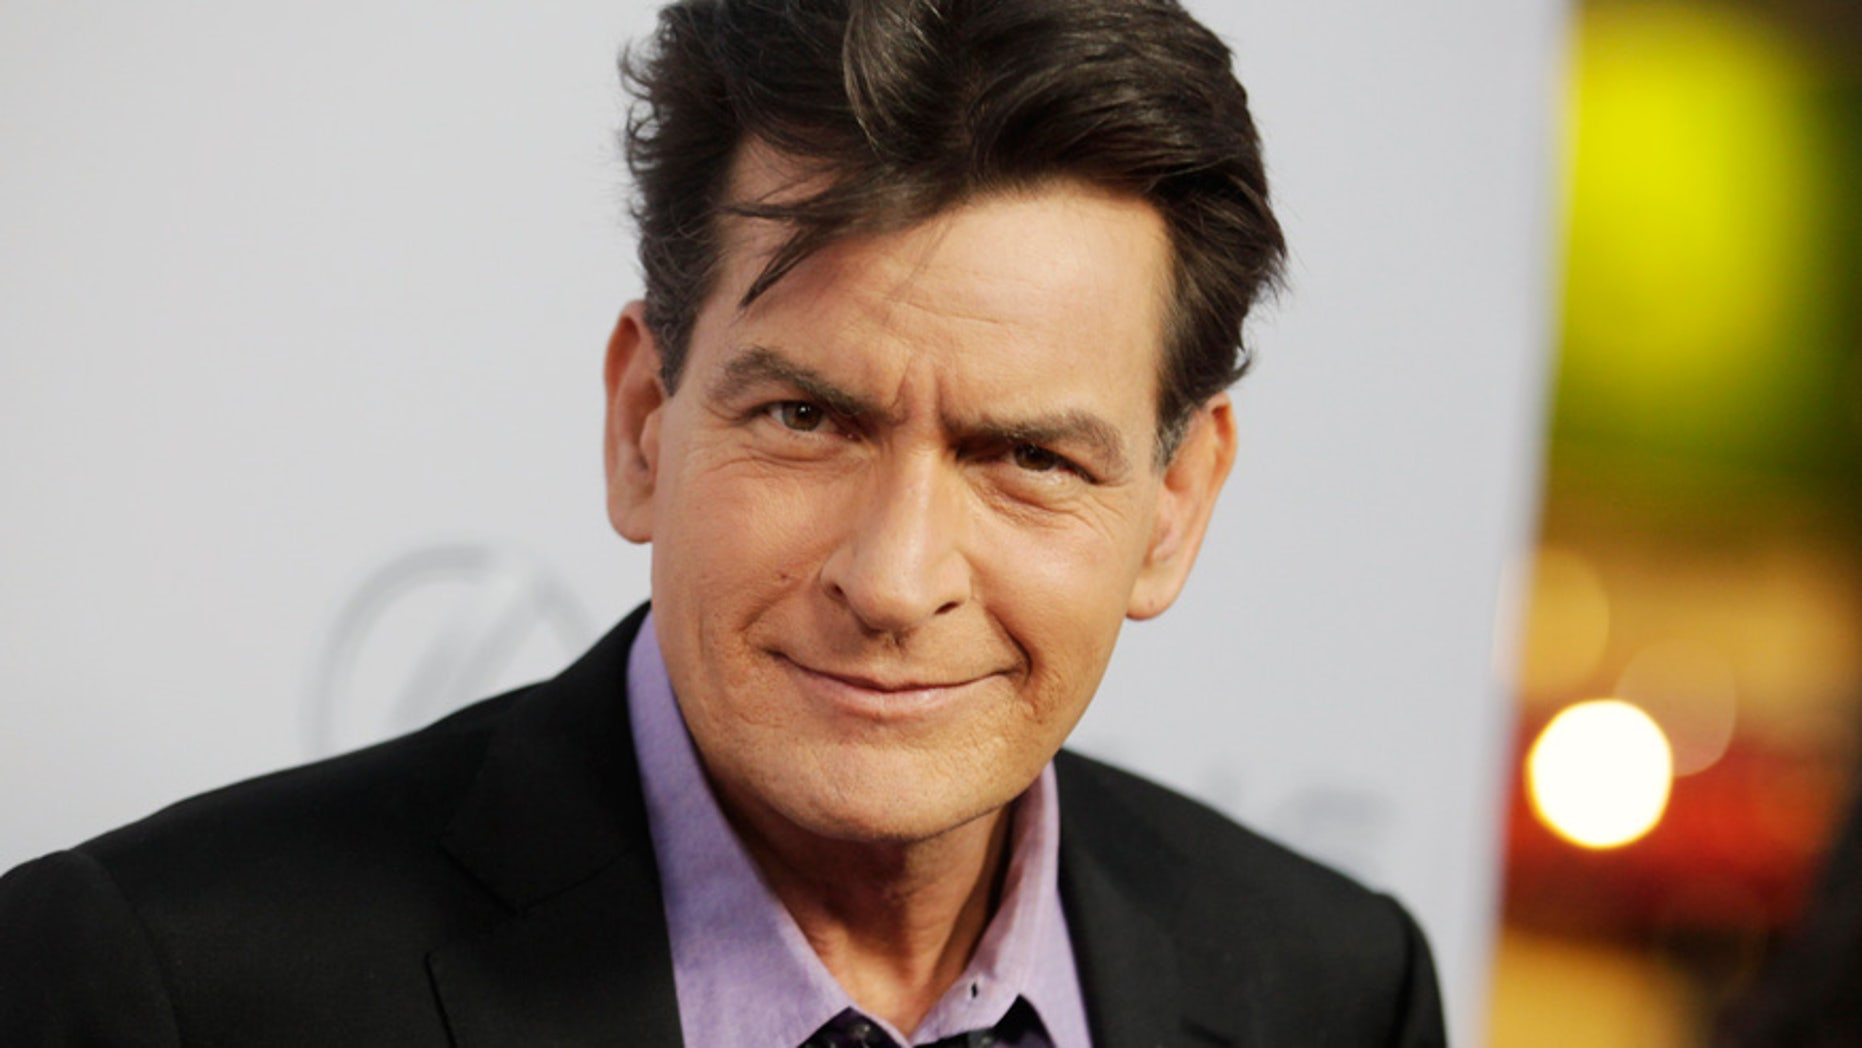 Charlie Sheen Puts Babe Ruth S 1927 World Series Ring Up For Auction Fox News